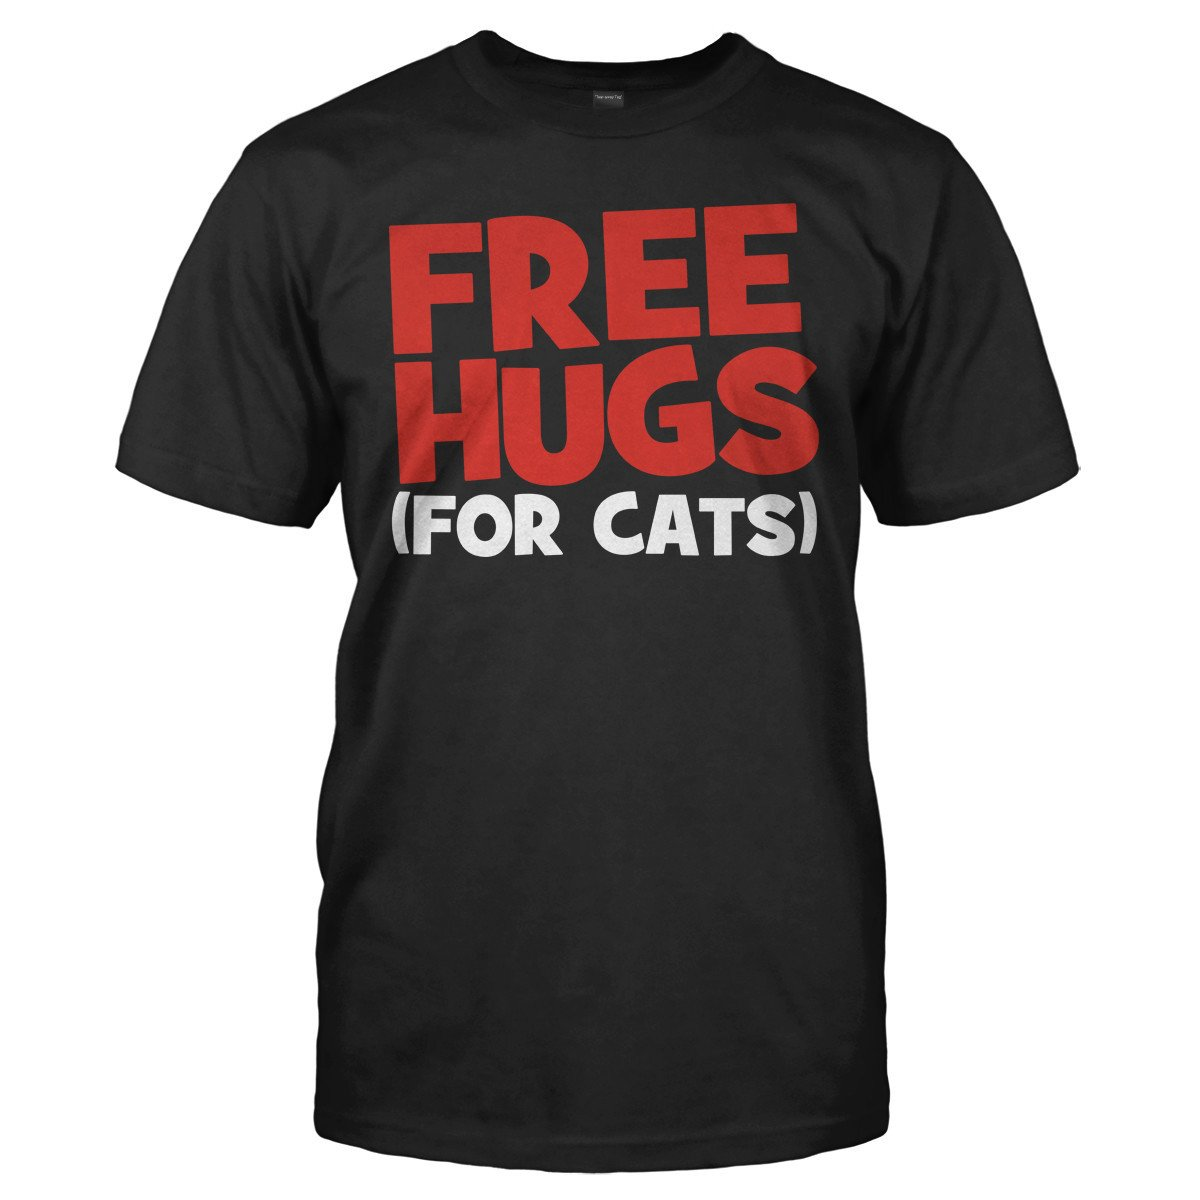 Free Hugs (For Cats) - T Shirt